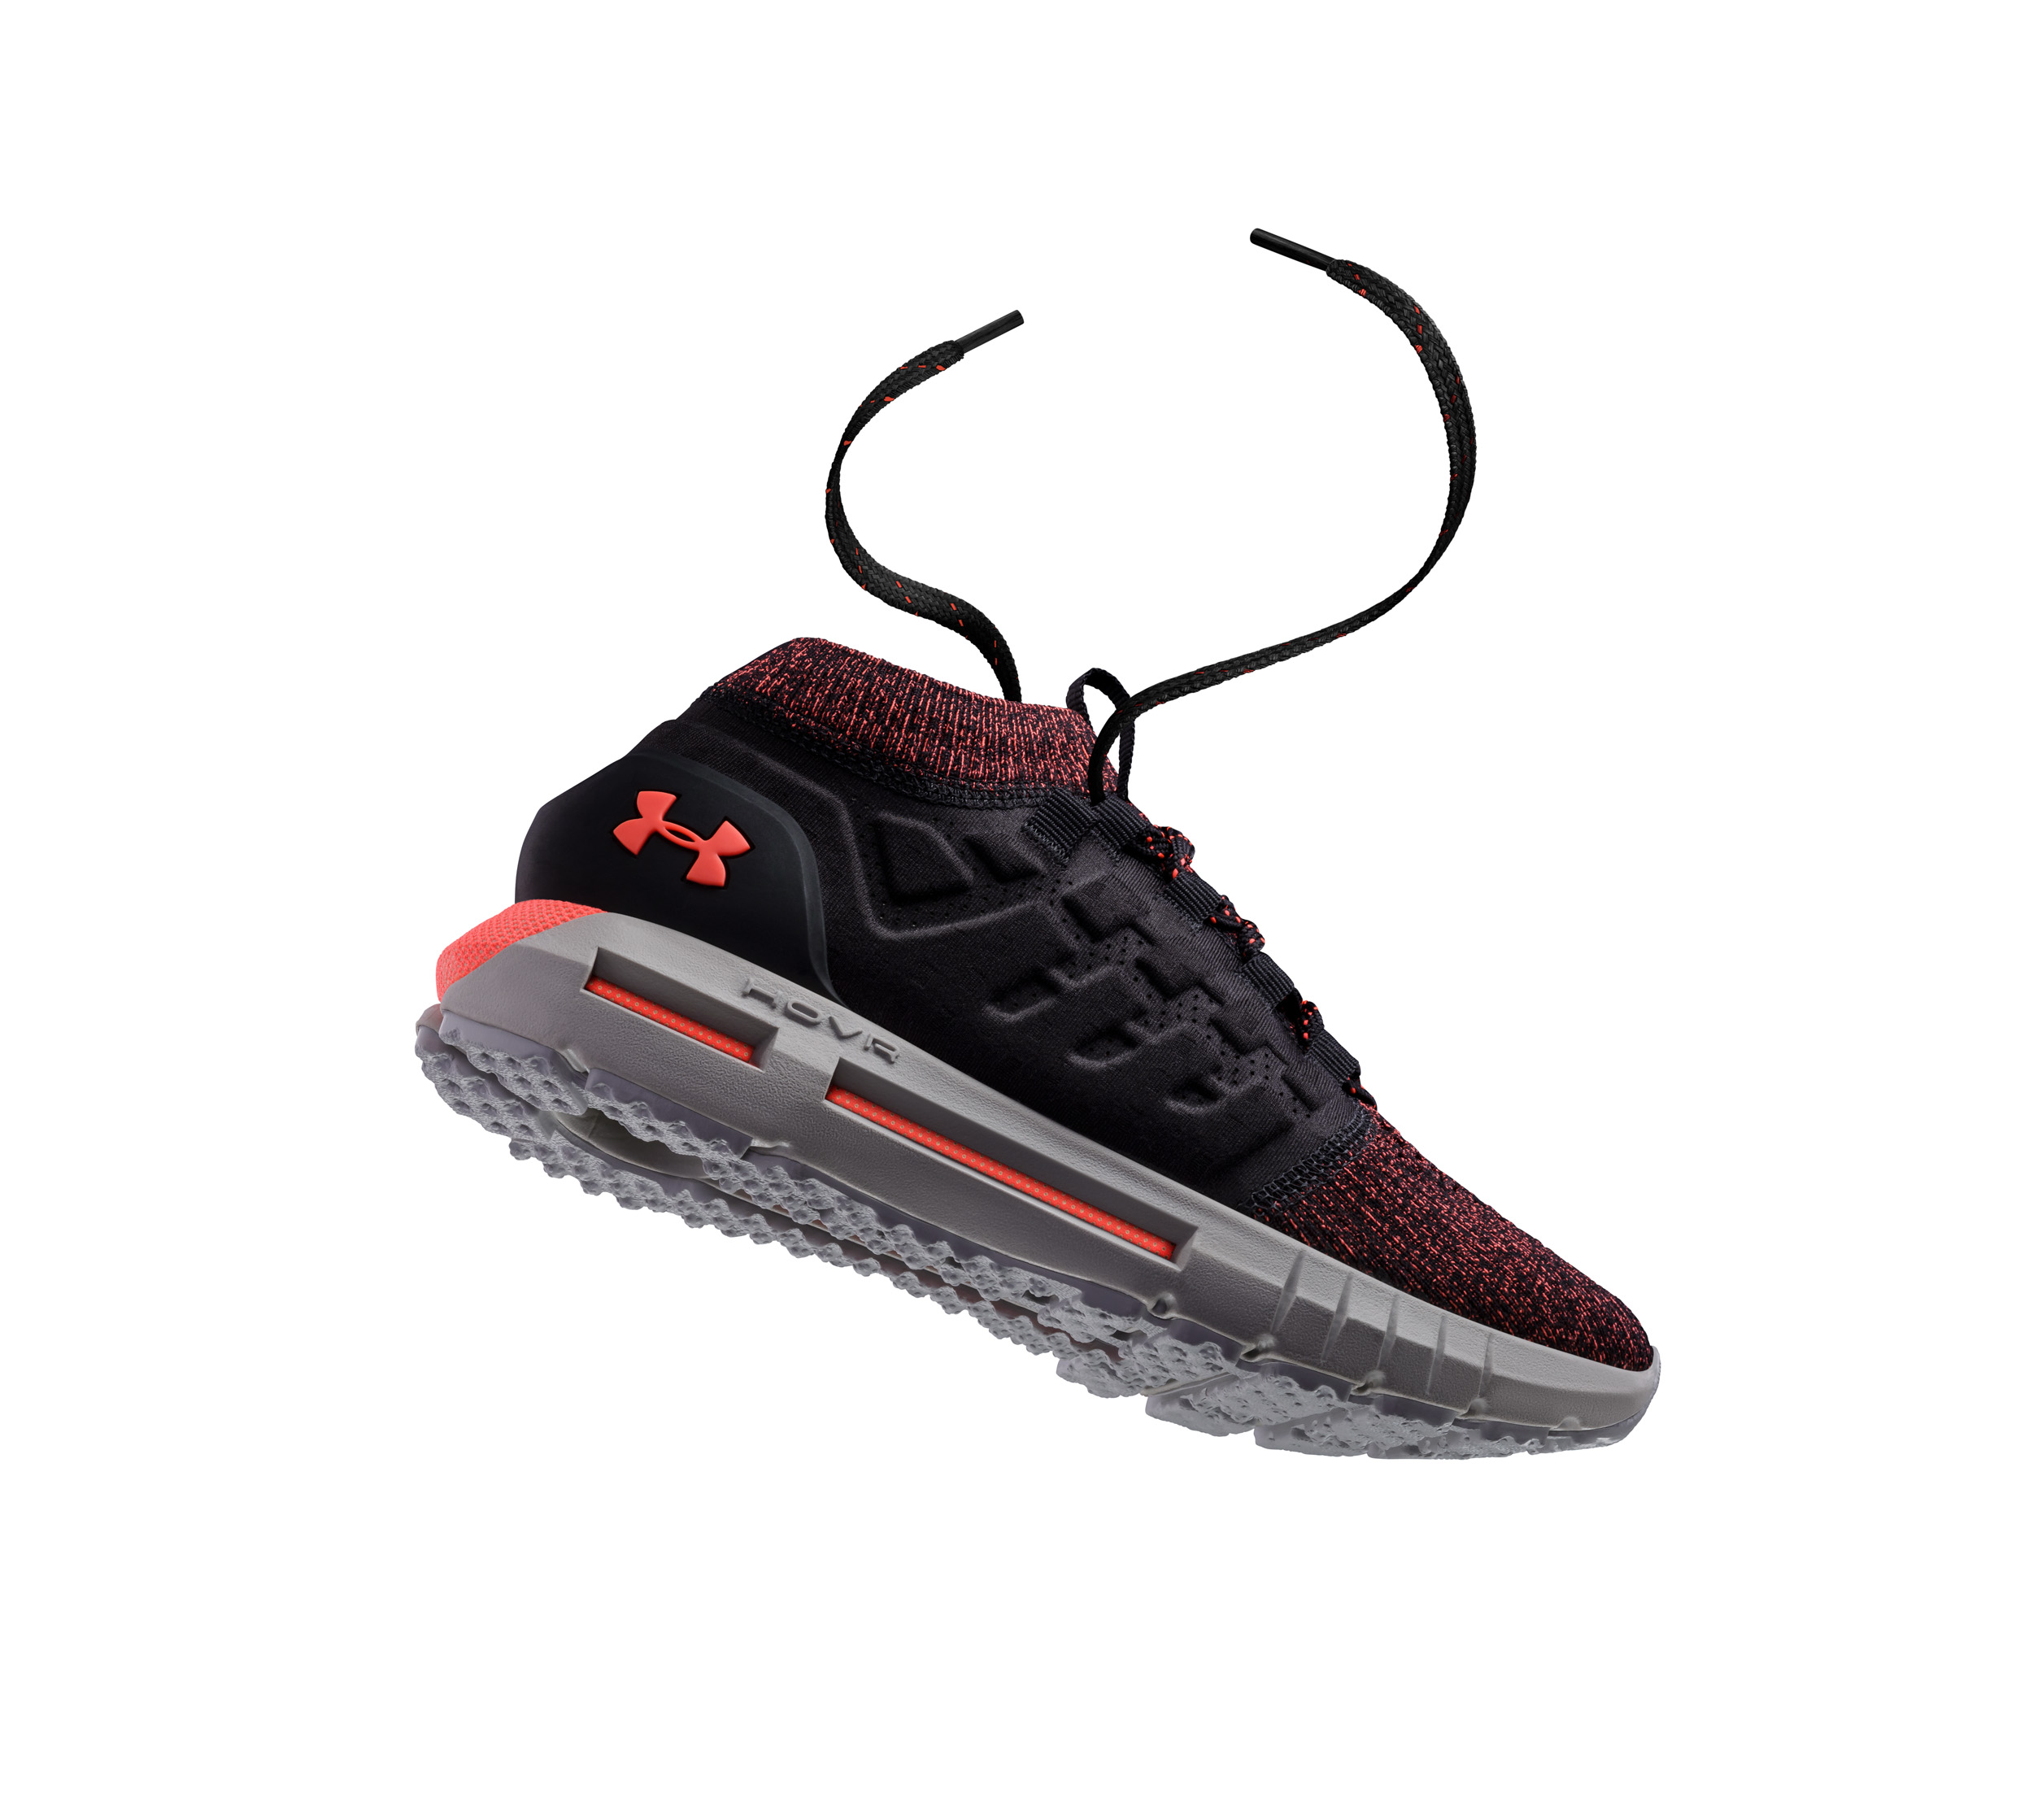 sports shoes feb92 66451 The Under Armour HOVR Phantom And Sonic Twisted Knit ...